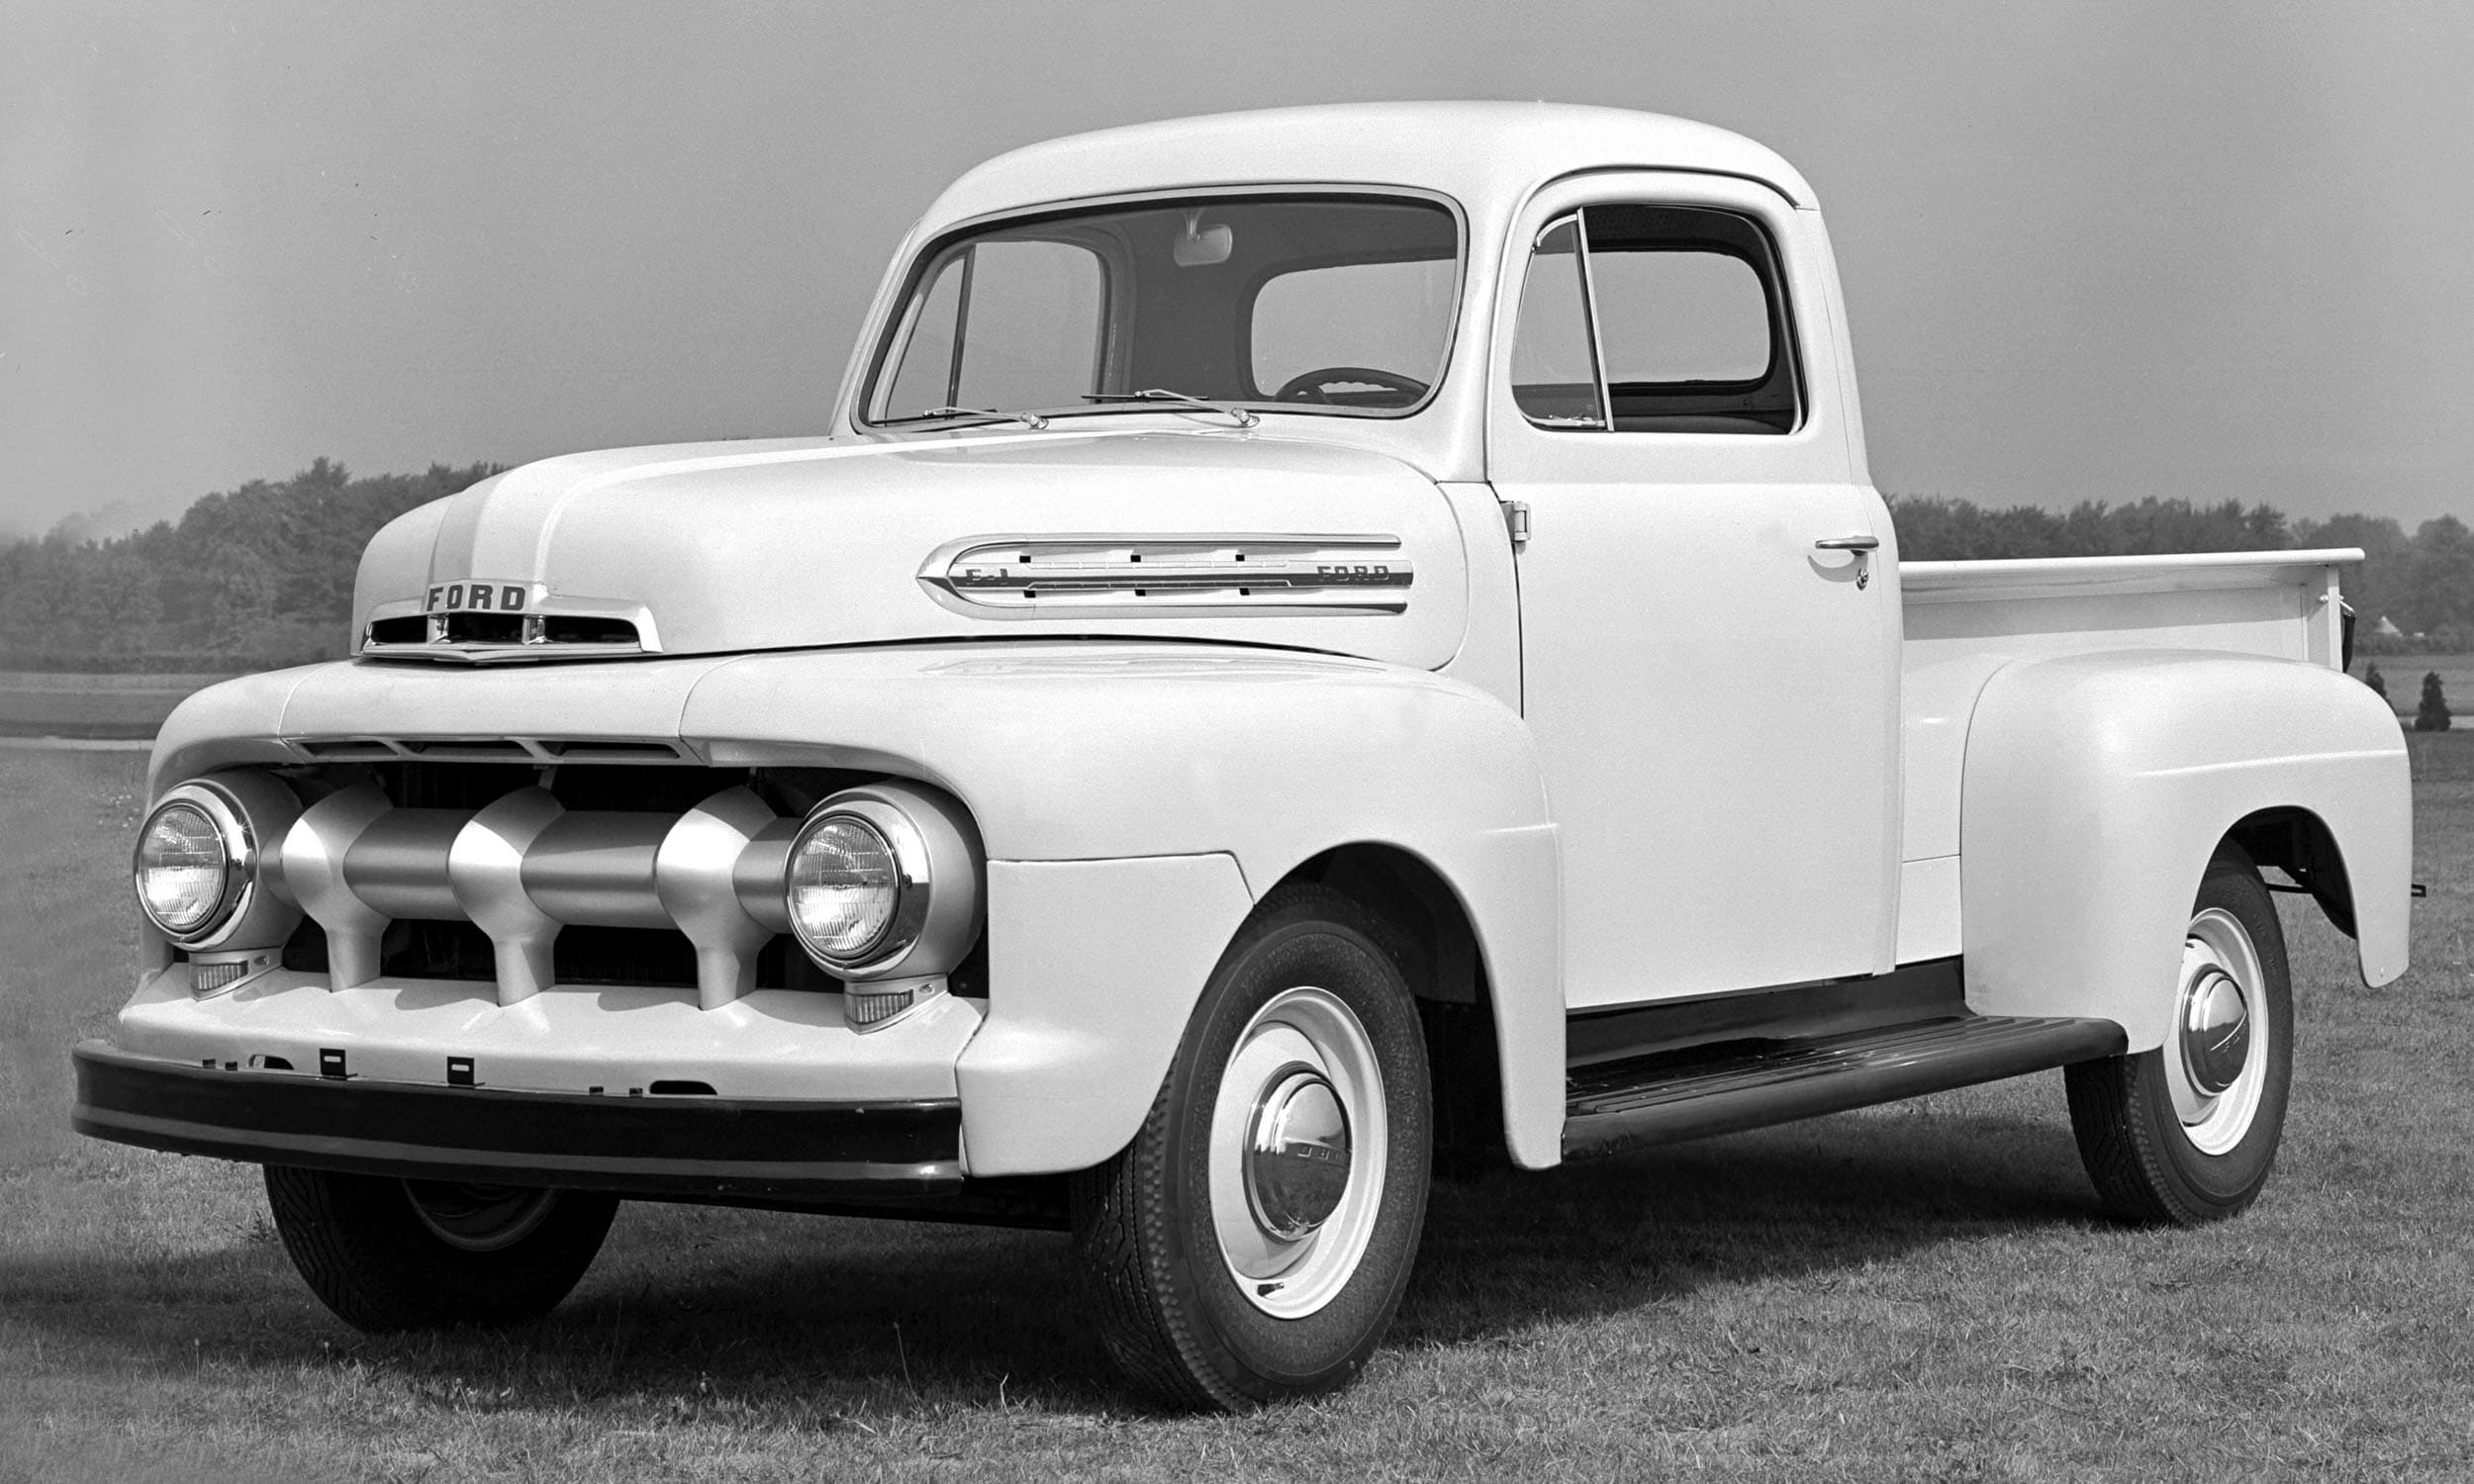 70 Years On Fords Iconic F 150 Continues To Move The People 1948 Ford Panel Truck Series Generation 1 52